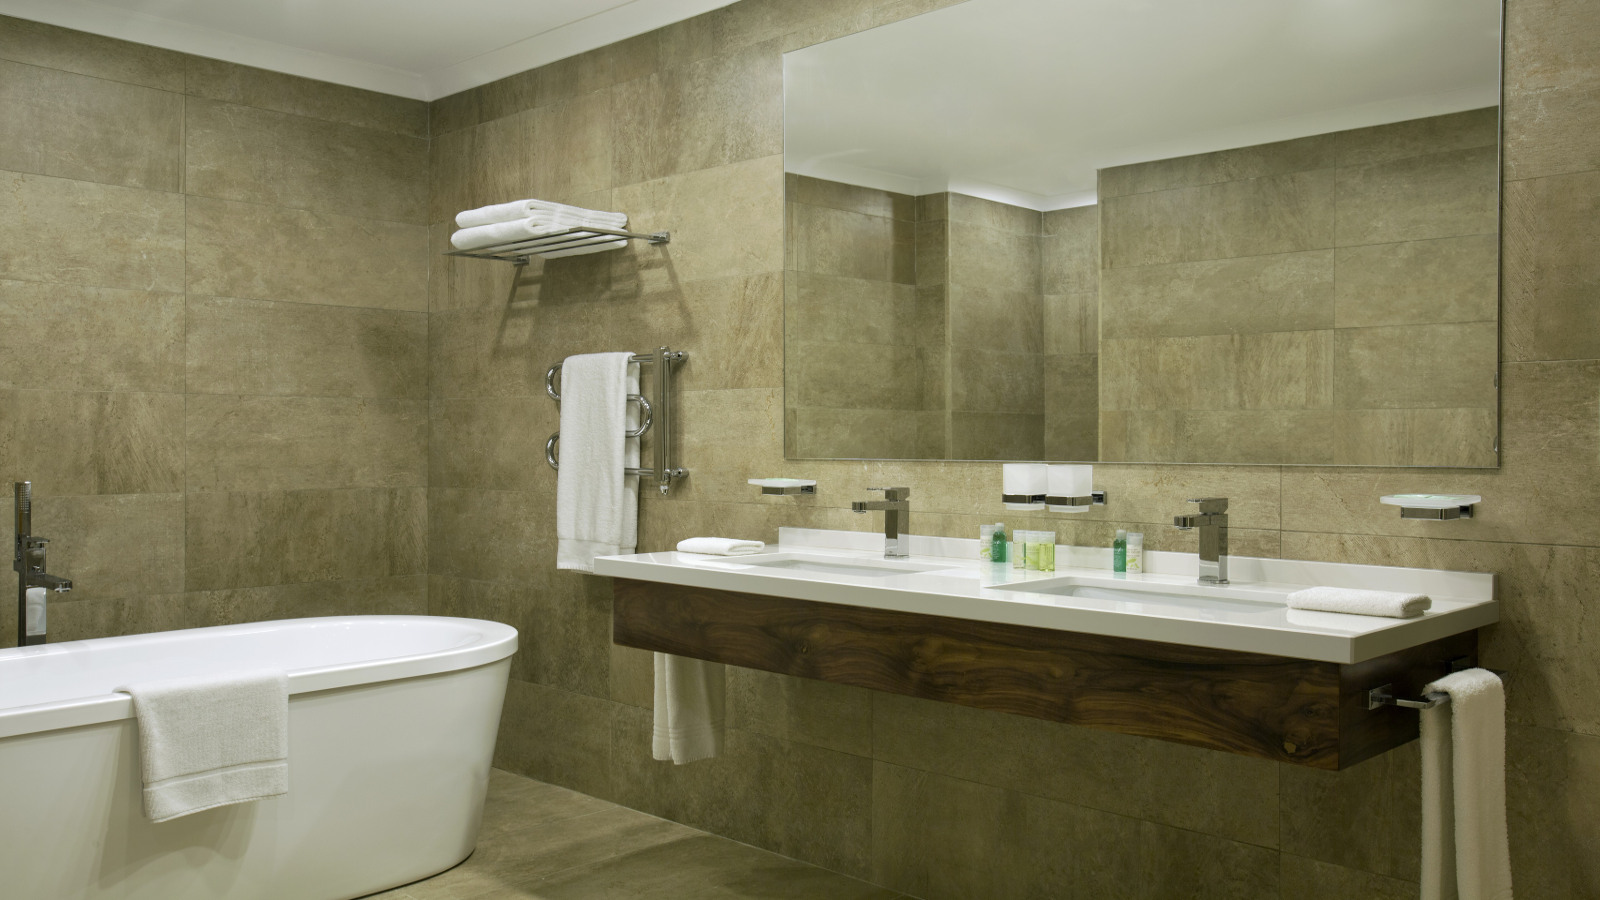 Stunning 40 Luxury Bathrooms Malta Decorating Design Of Hilton Malta Review Read More About The